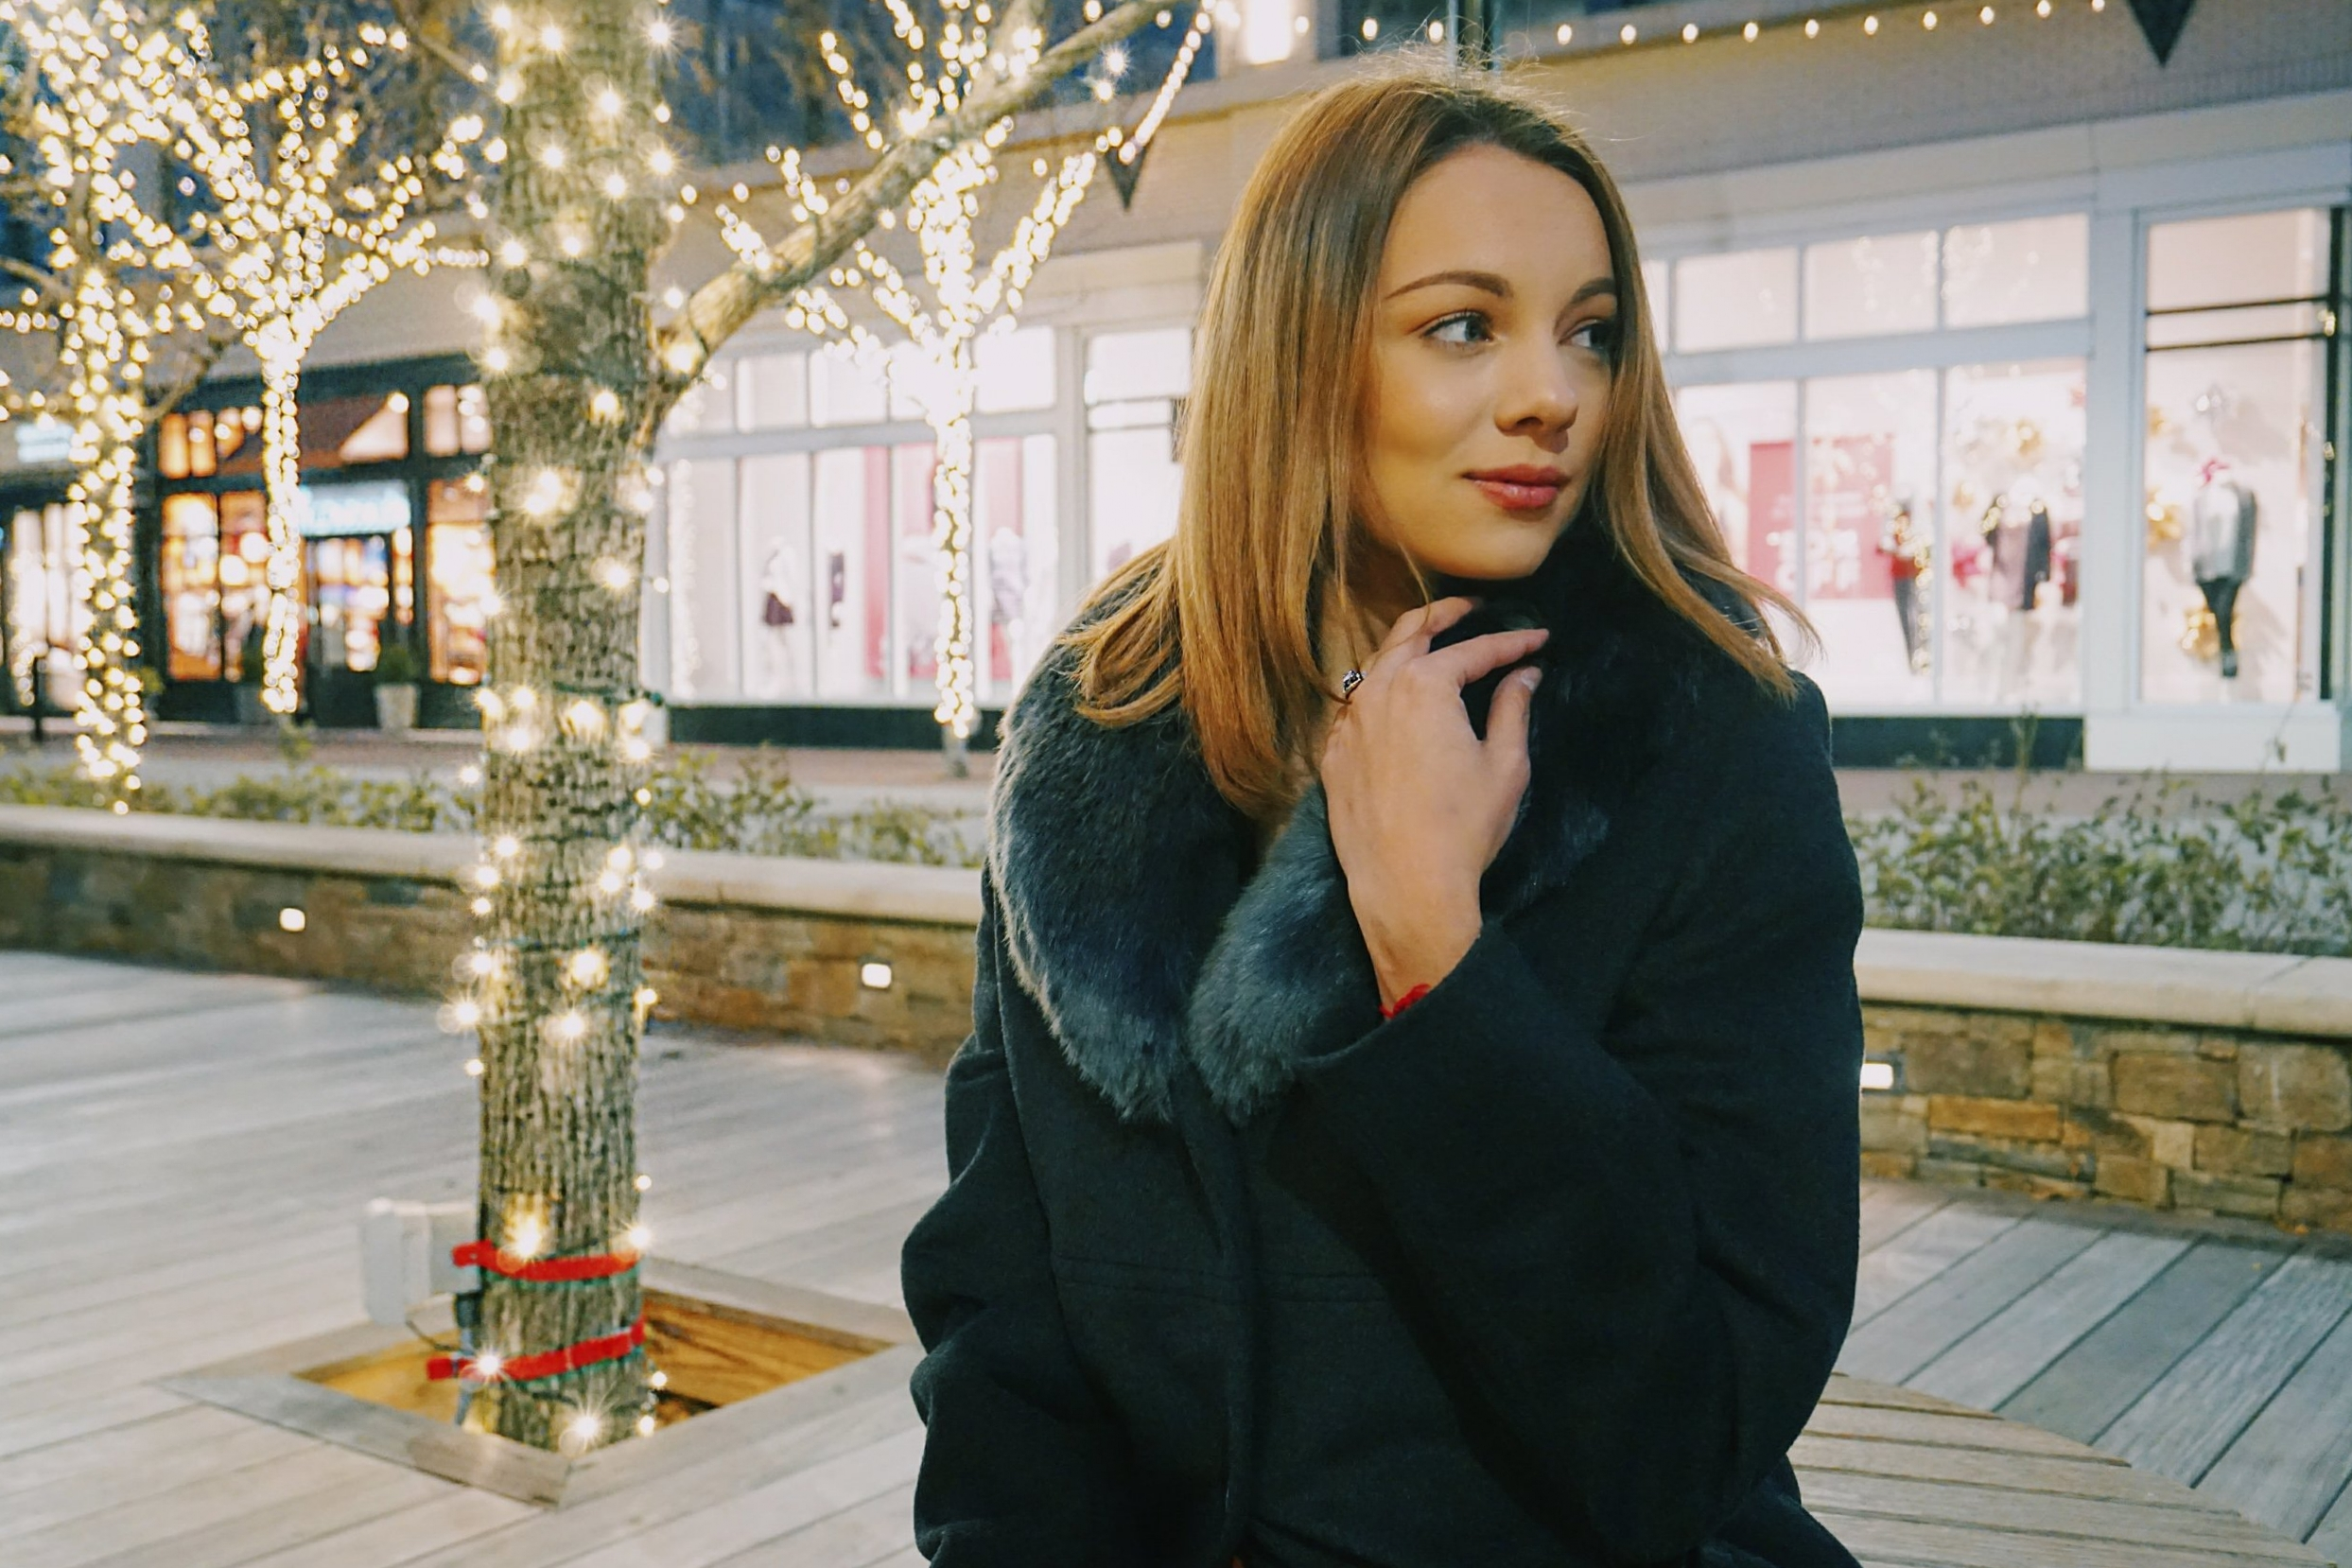 A blogger sitting on the bench outside, and Christmas lights are wrapped around the trees behind her.